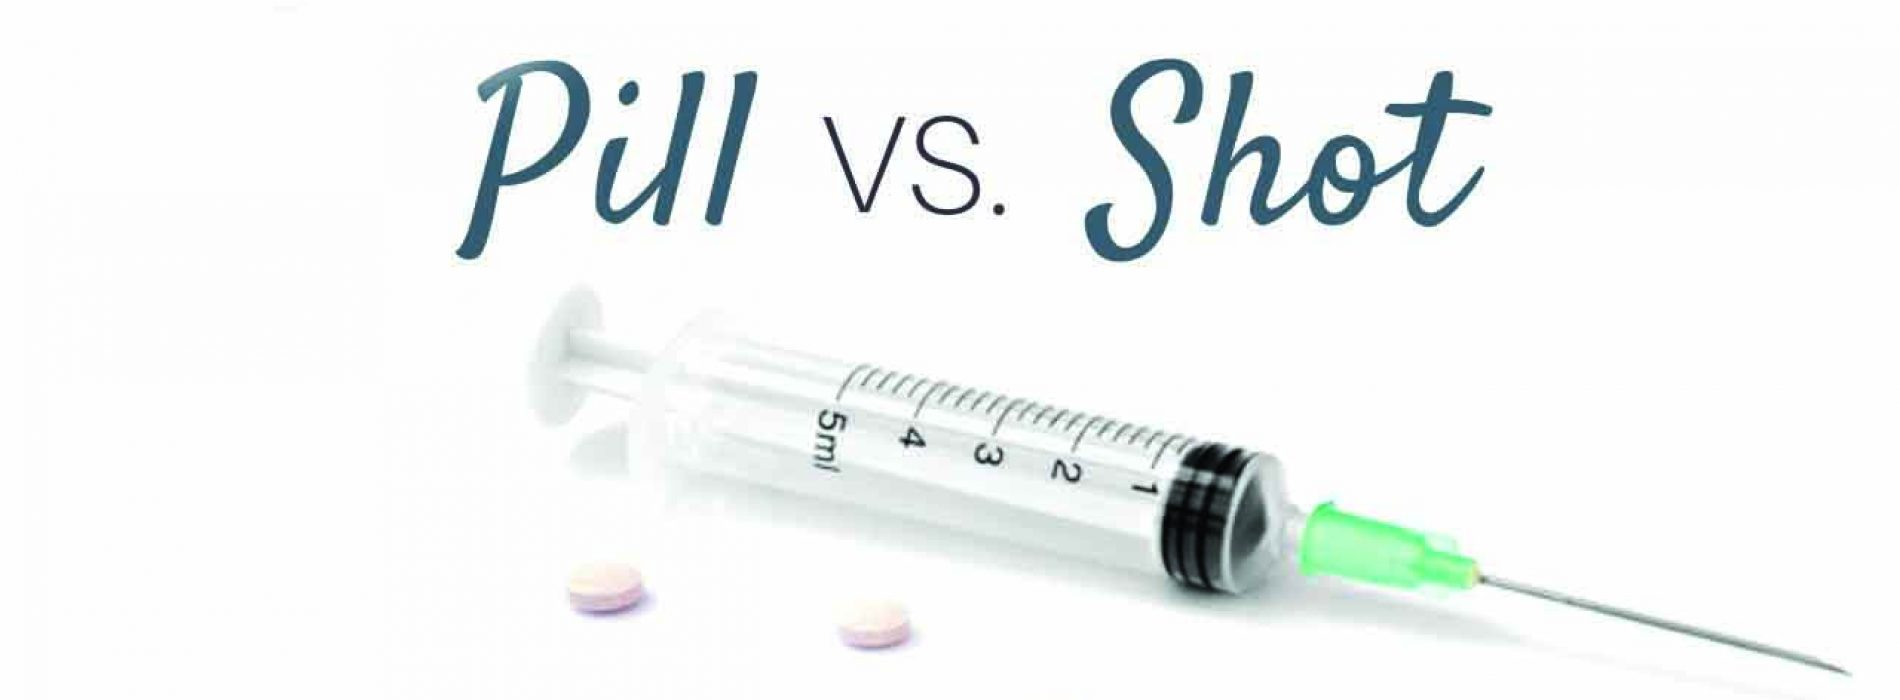 The shot versus  the pill dilemma!